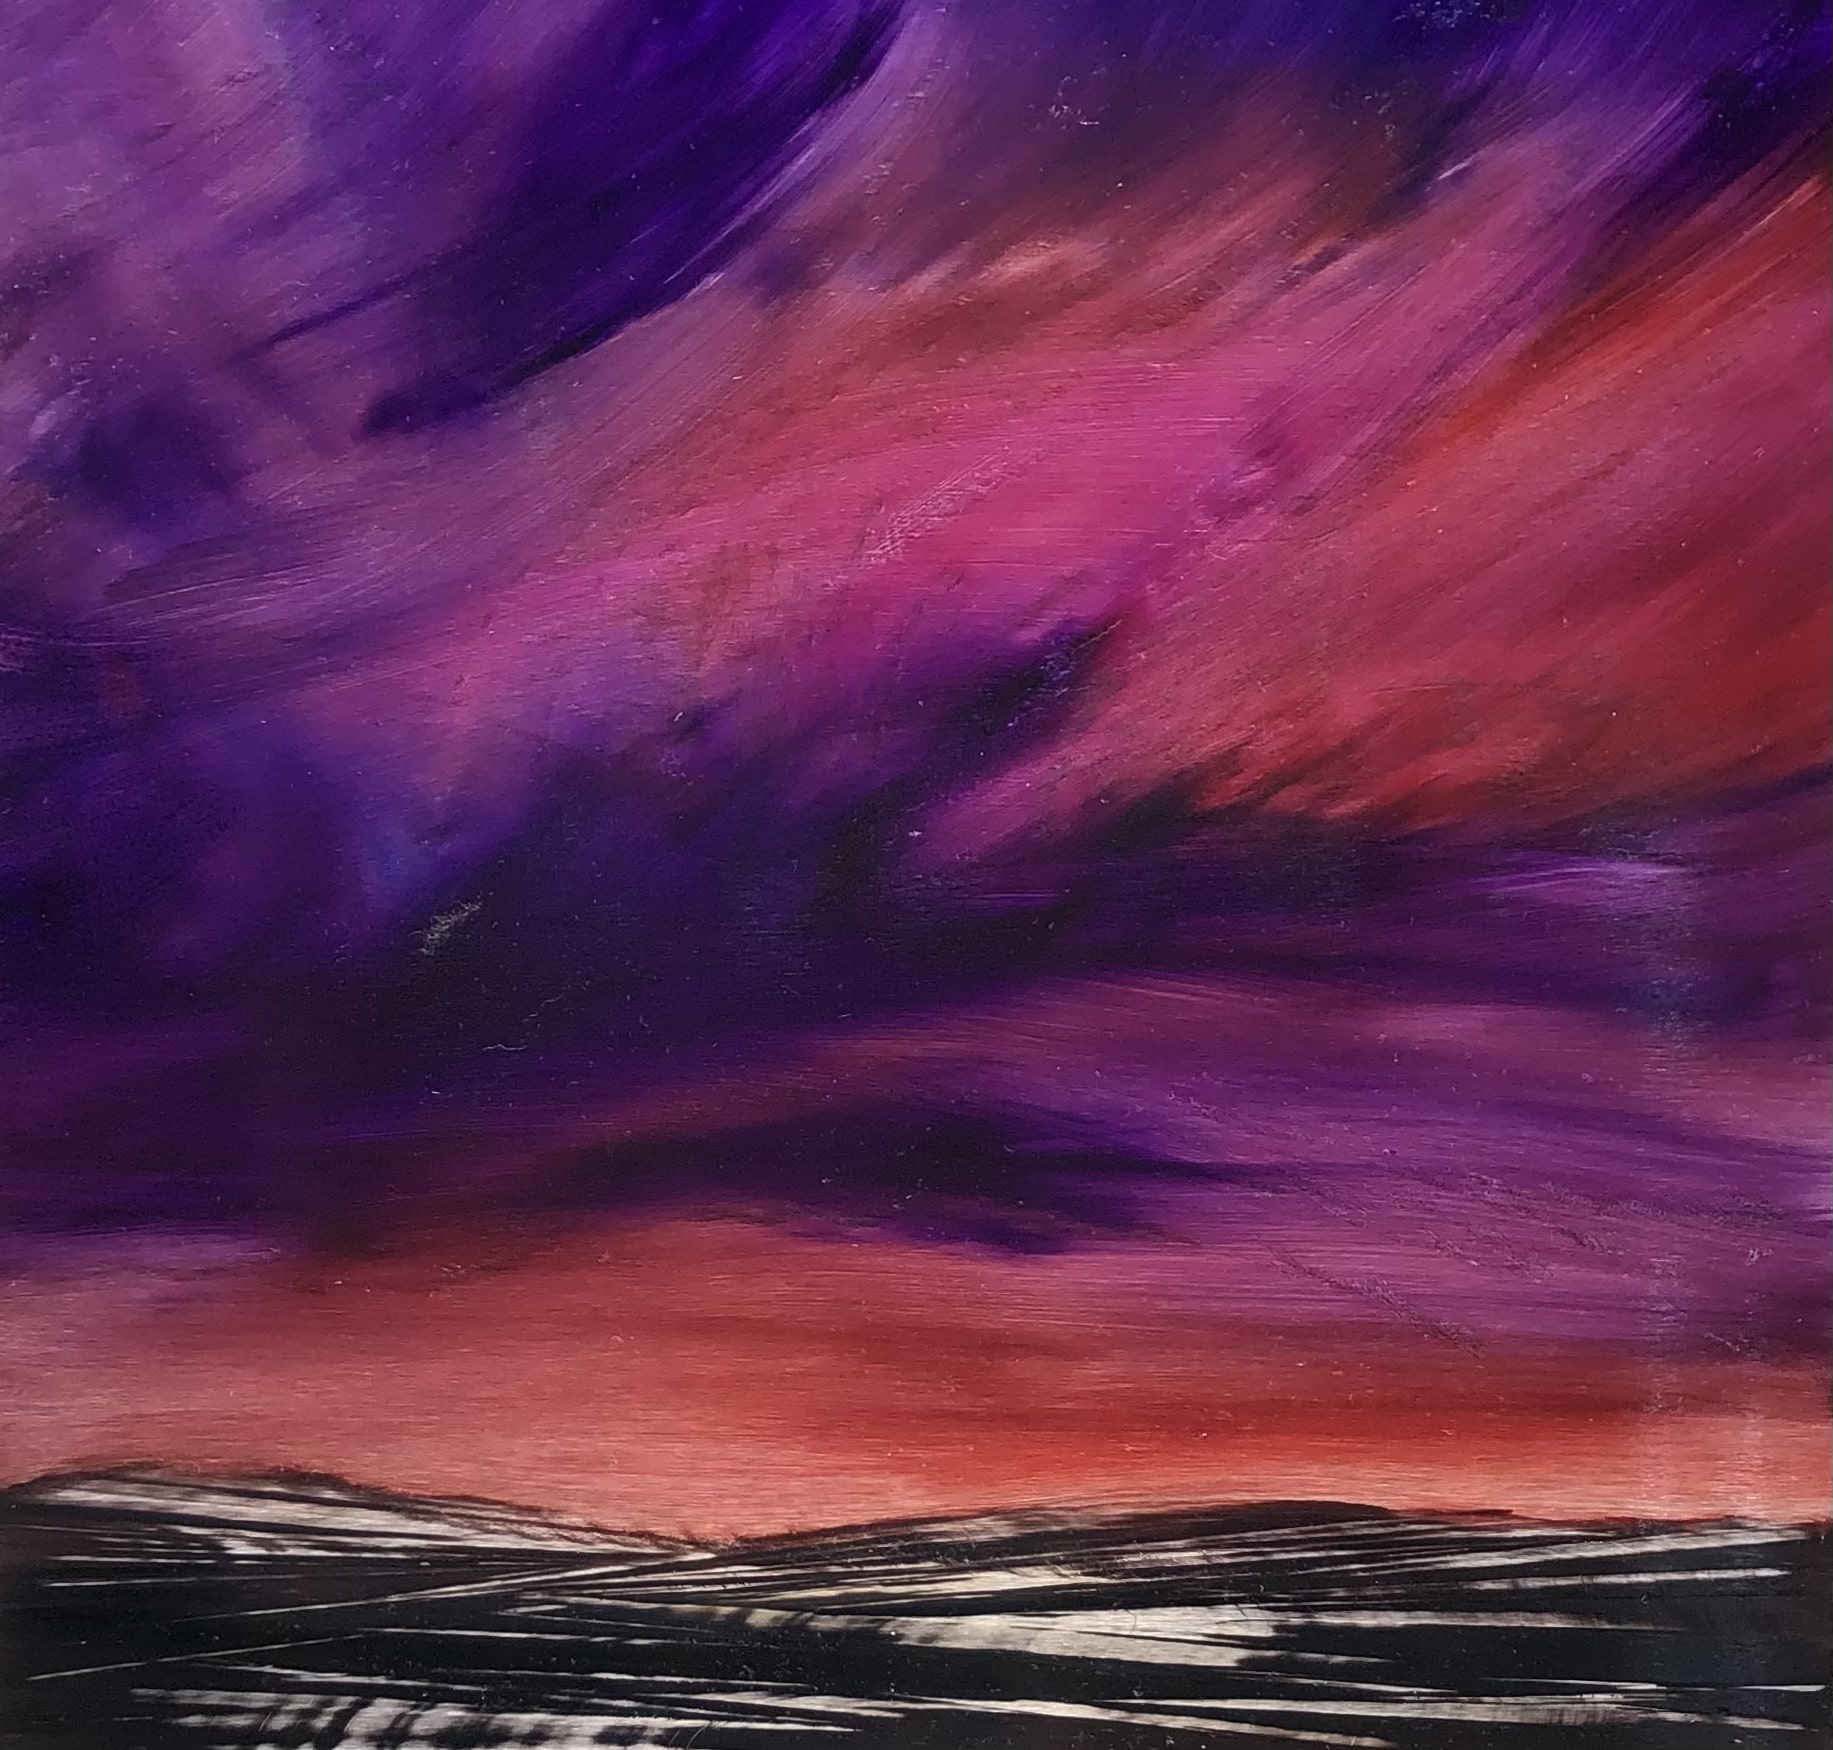 An original cloudscape oil painting on metal by artist Cynthia McLoughlin of an burnt orange horizon with wispy pink/purple clouds.